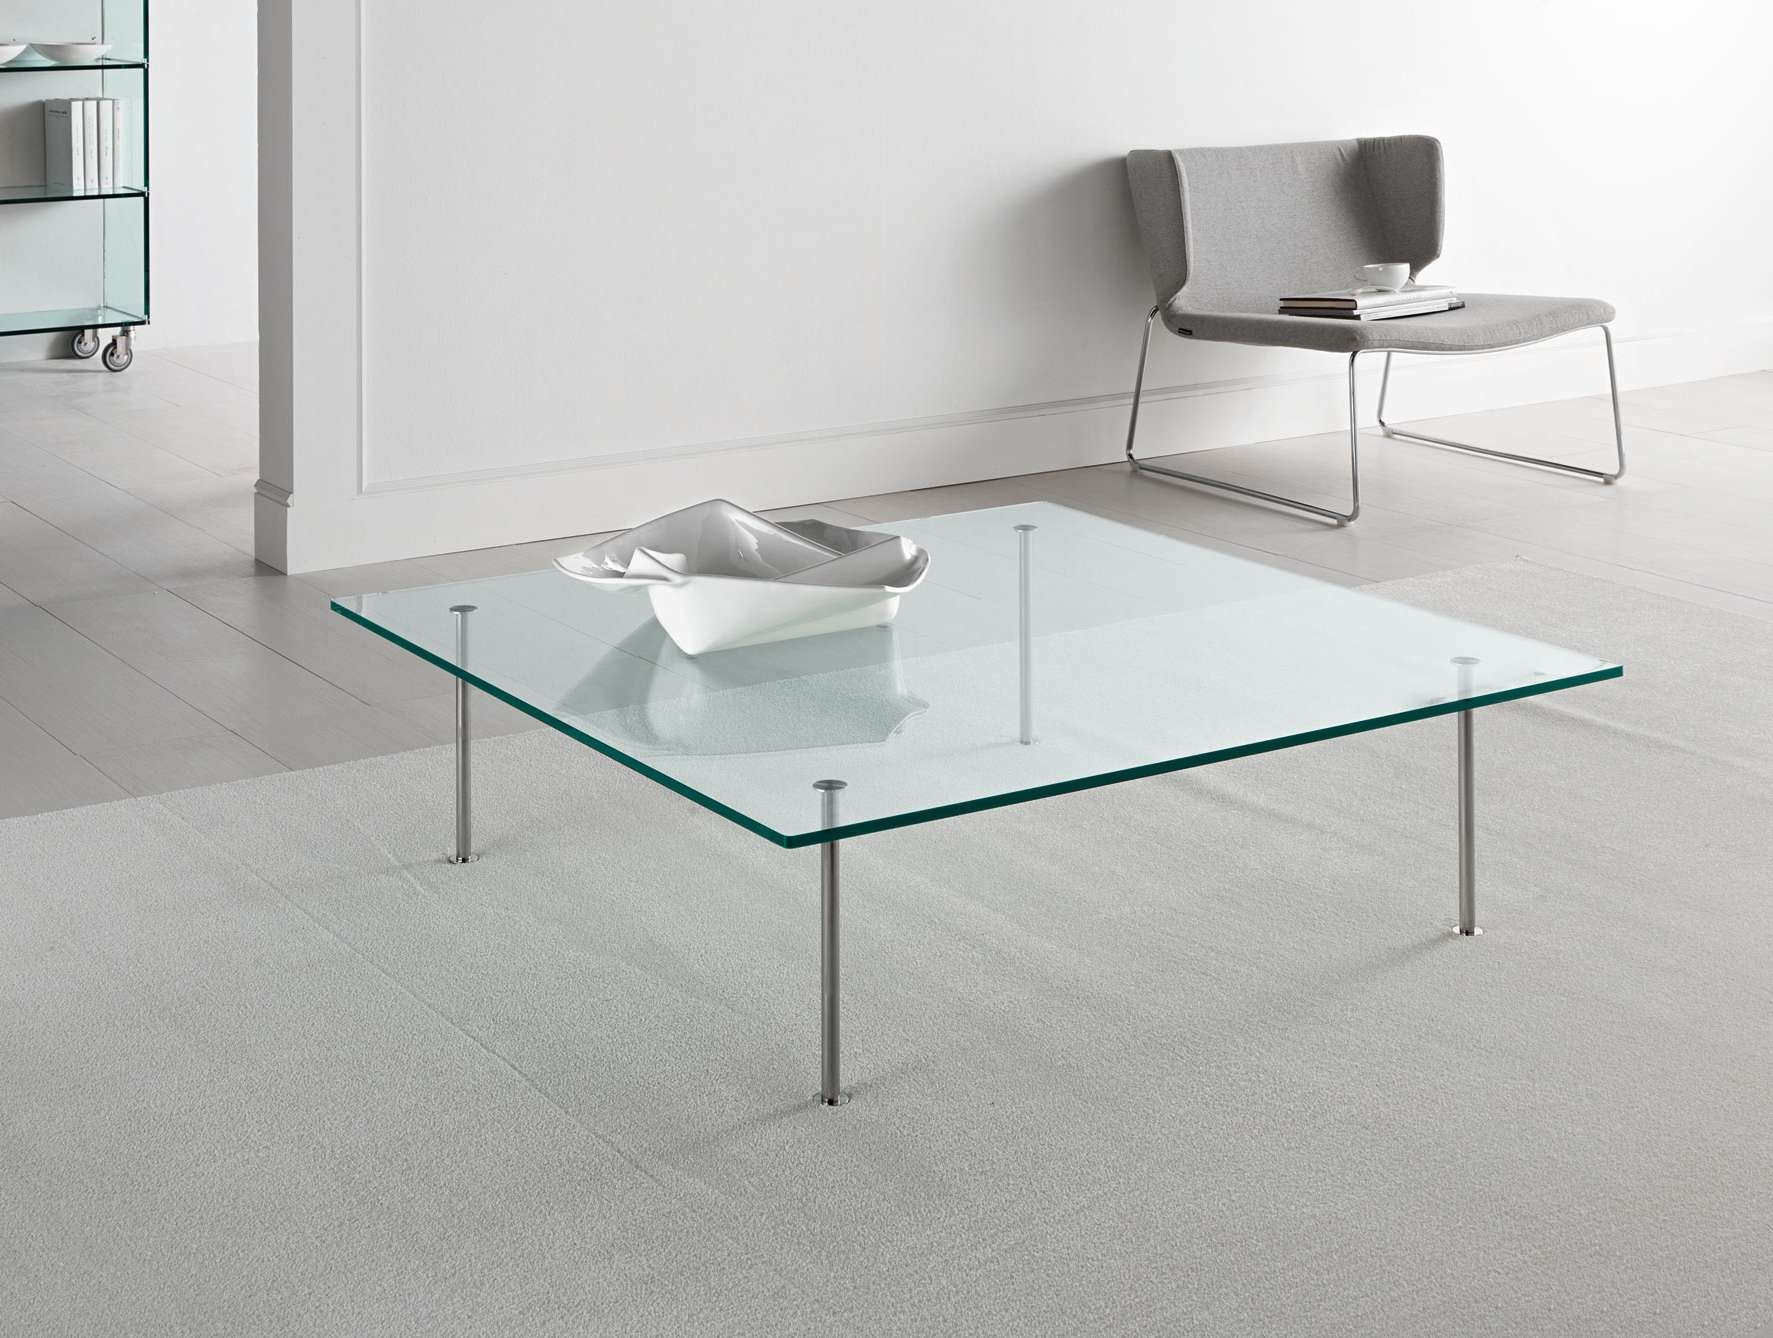 Newest Square Glass Coffee Tables Regarding Nella Vetrina Tonelli Twig Modular Italian Square Coffee Table (View 6 of 20)